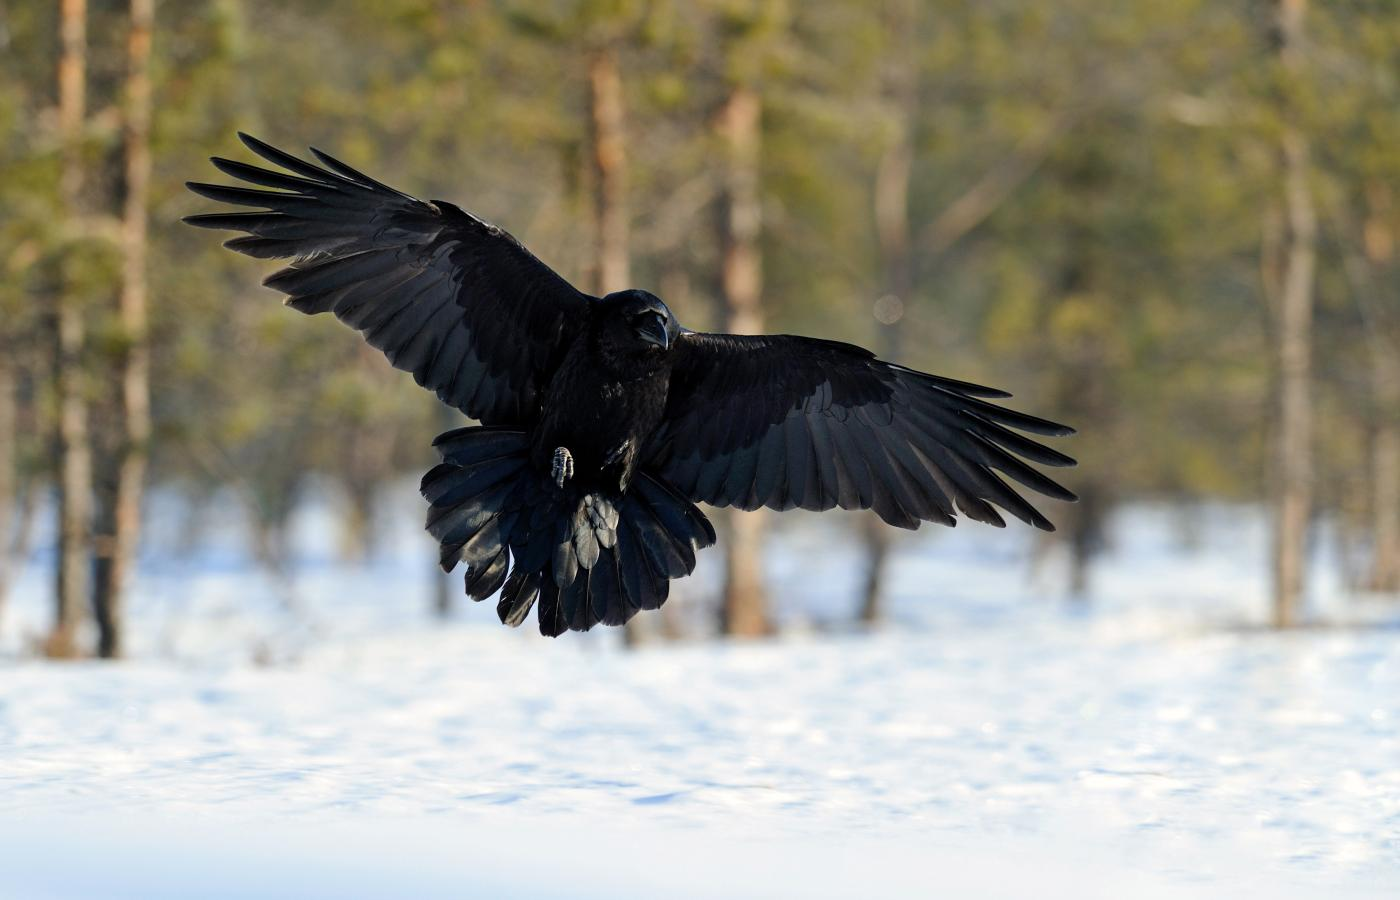 A raven flying about a snowy landscape